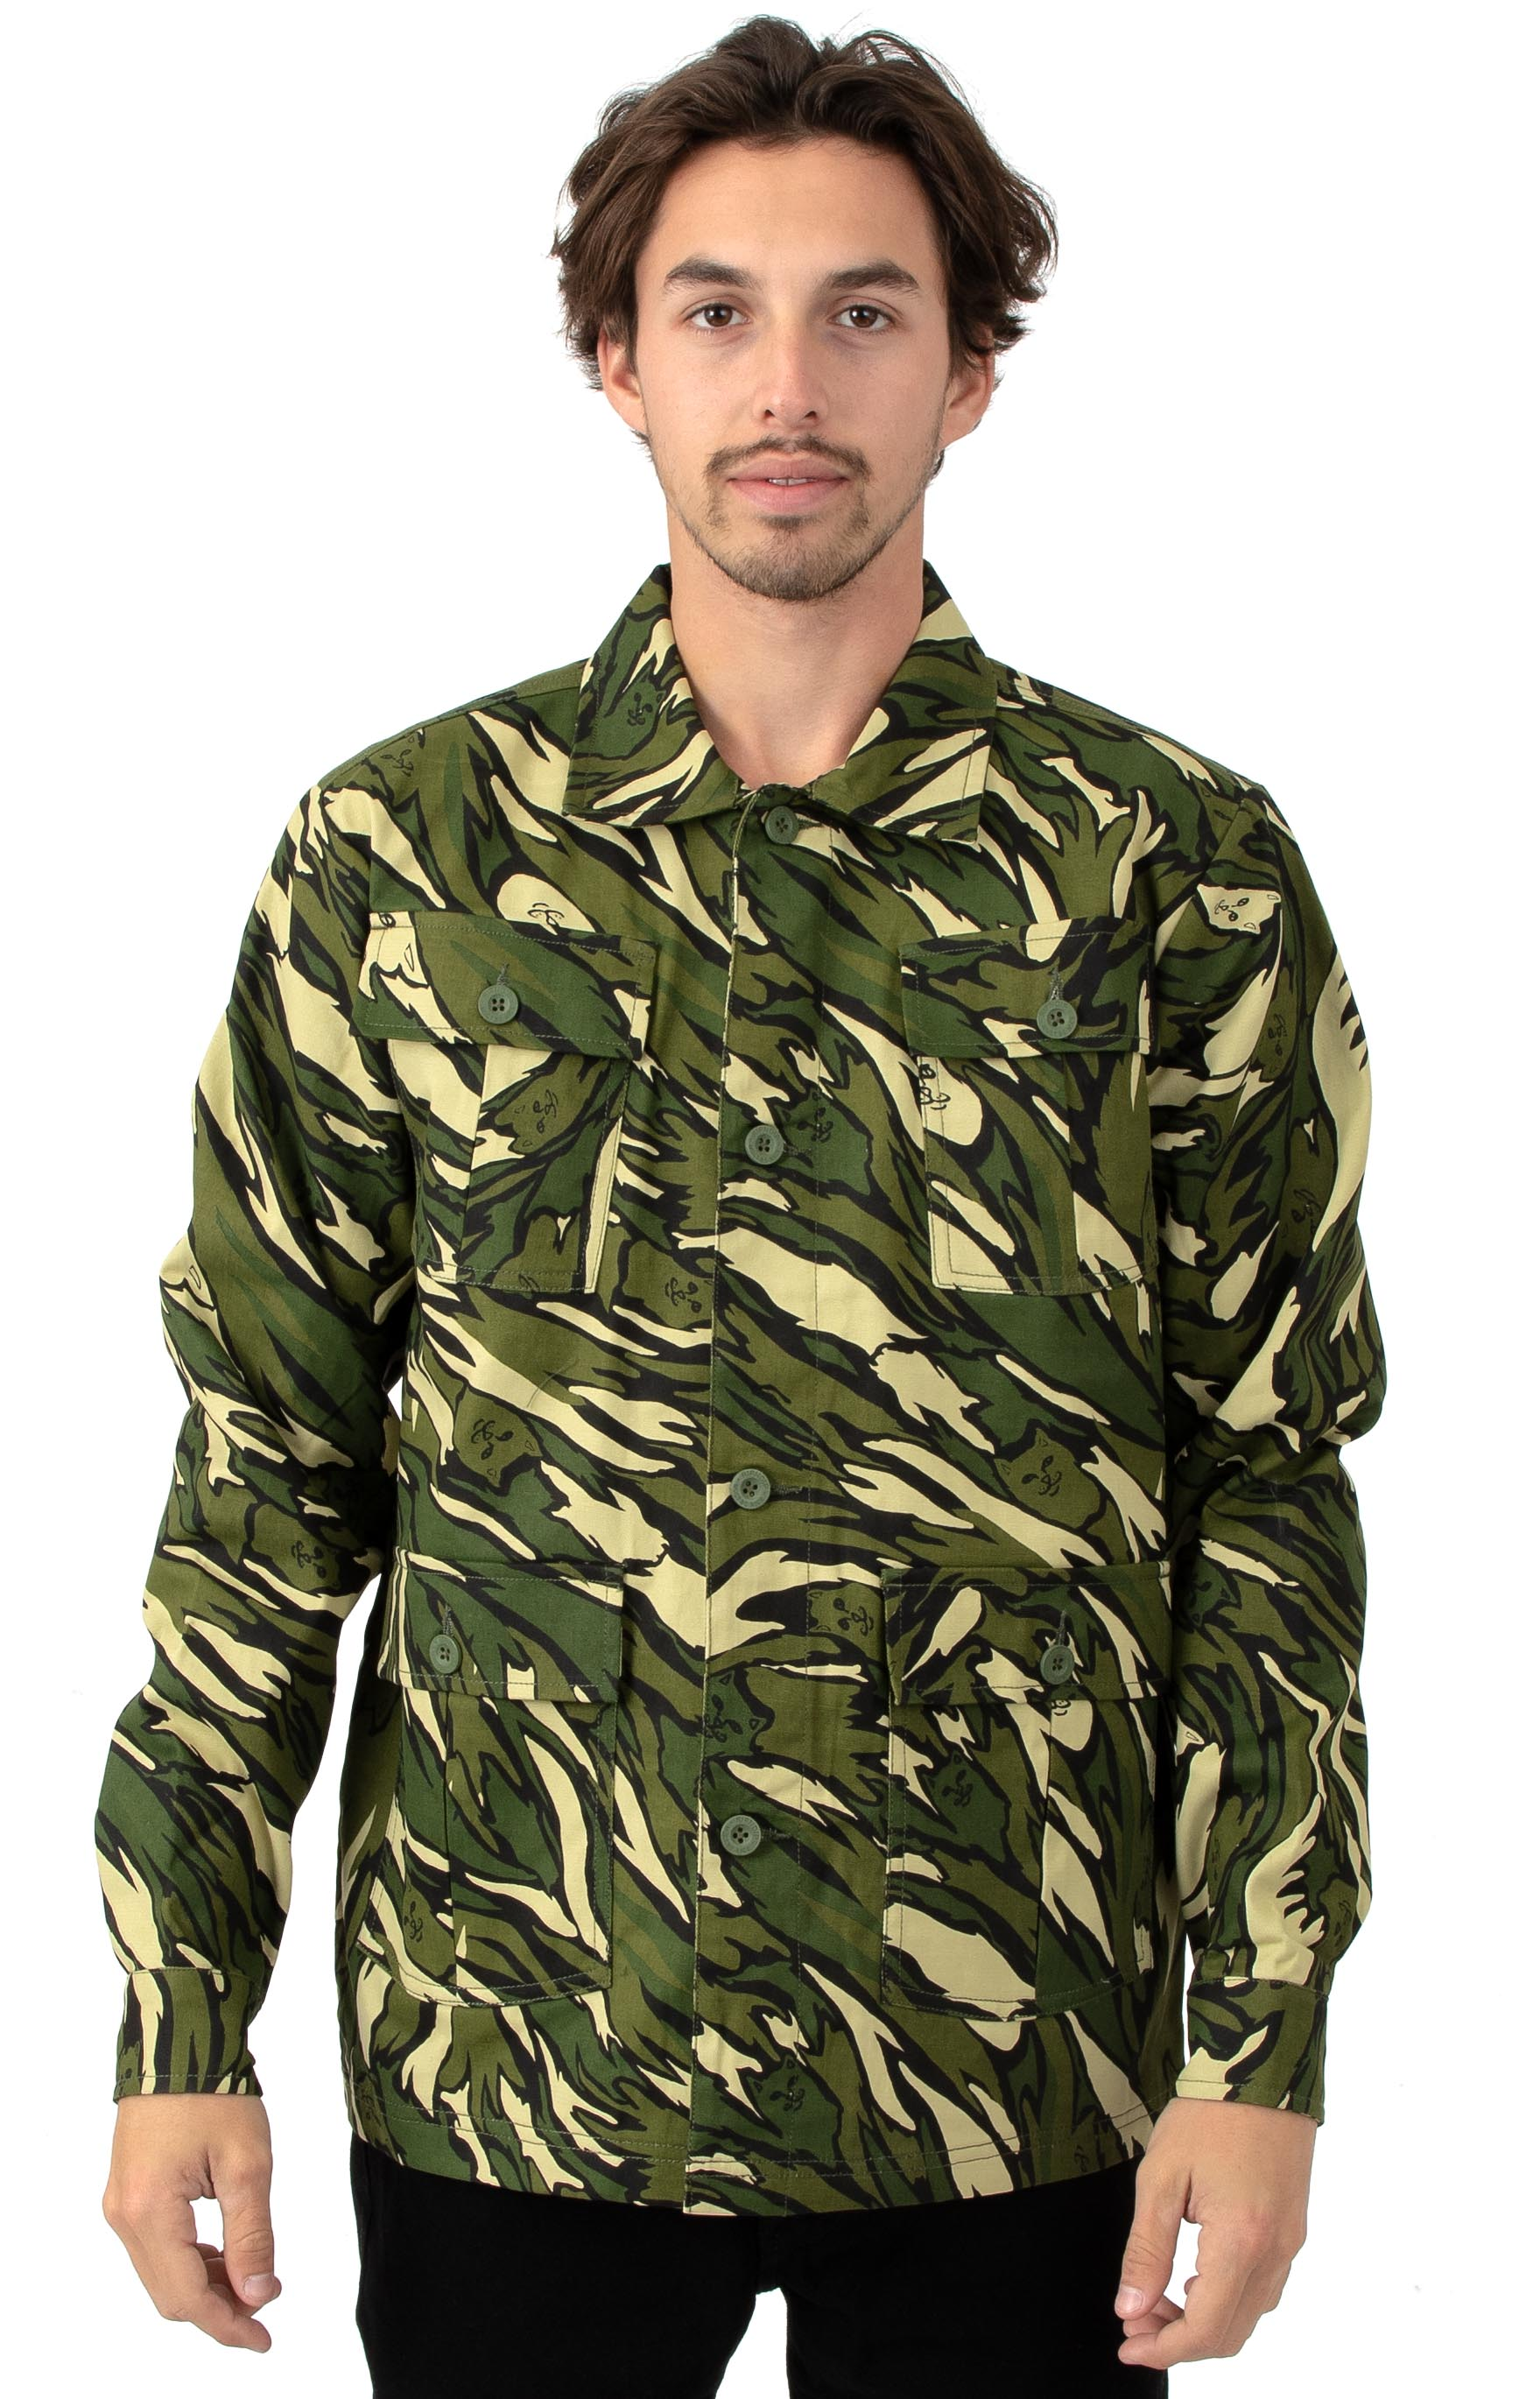 Tiger Nerm Ripstop Work Jacket - Green Camo